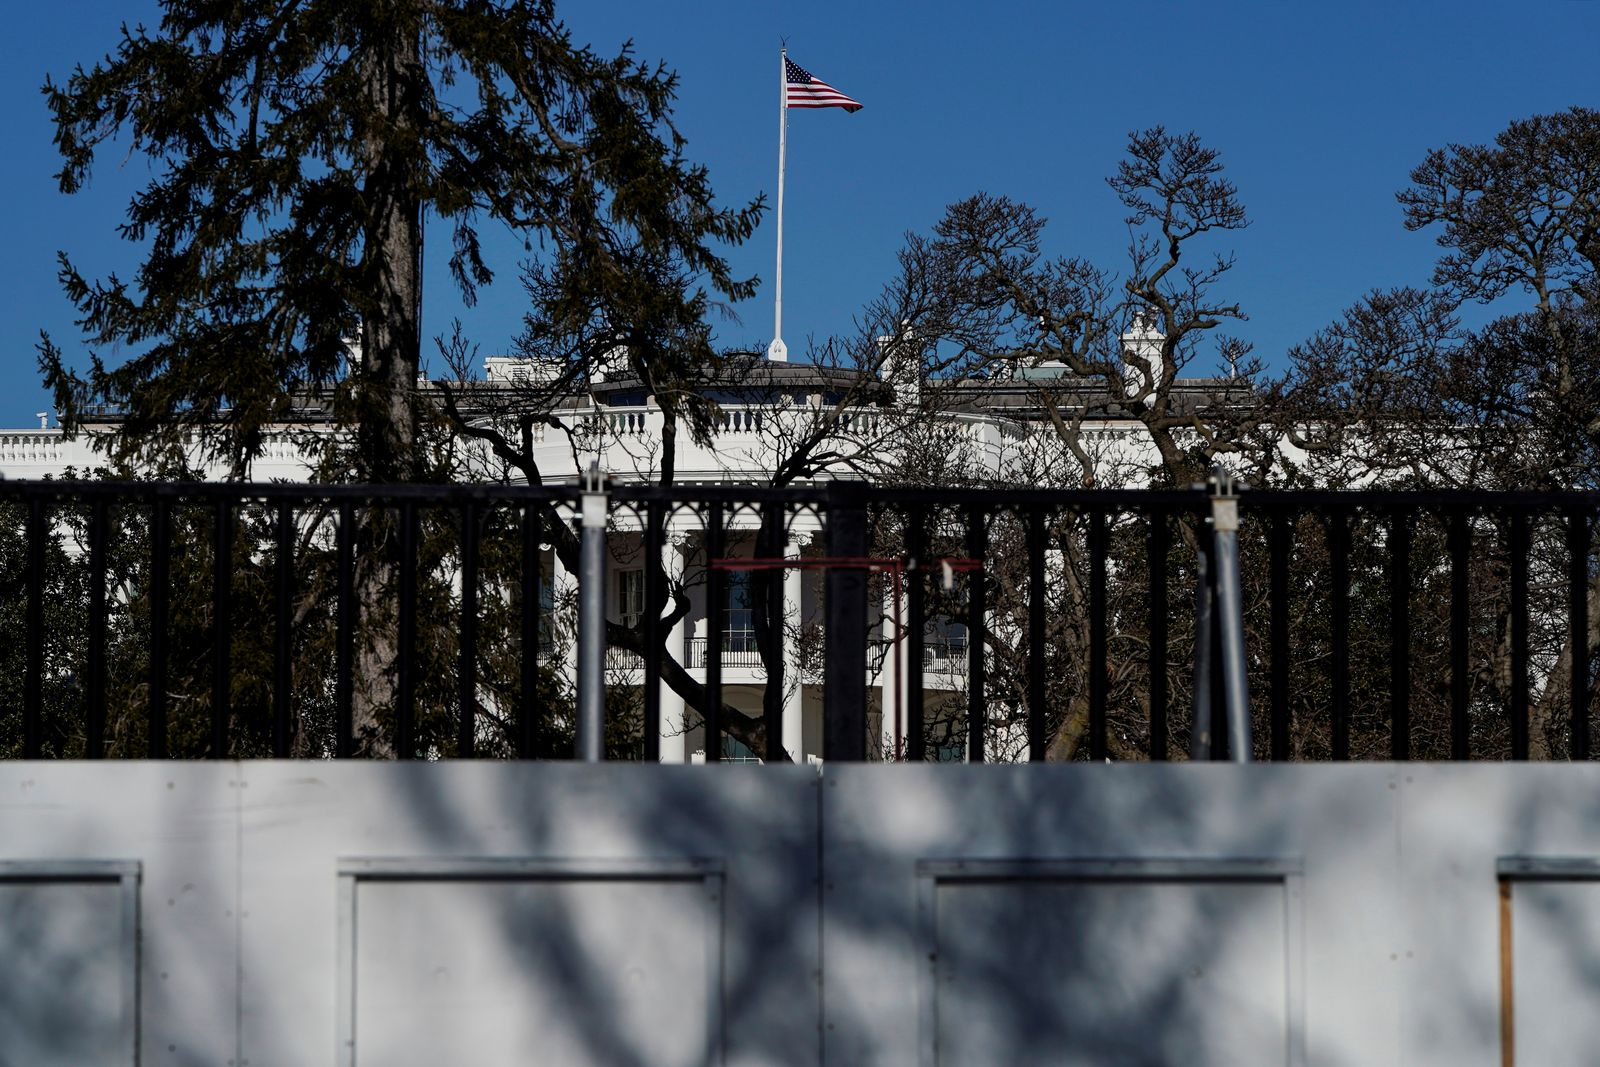 The White House is seen behind security fencing in Washington